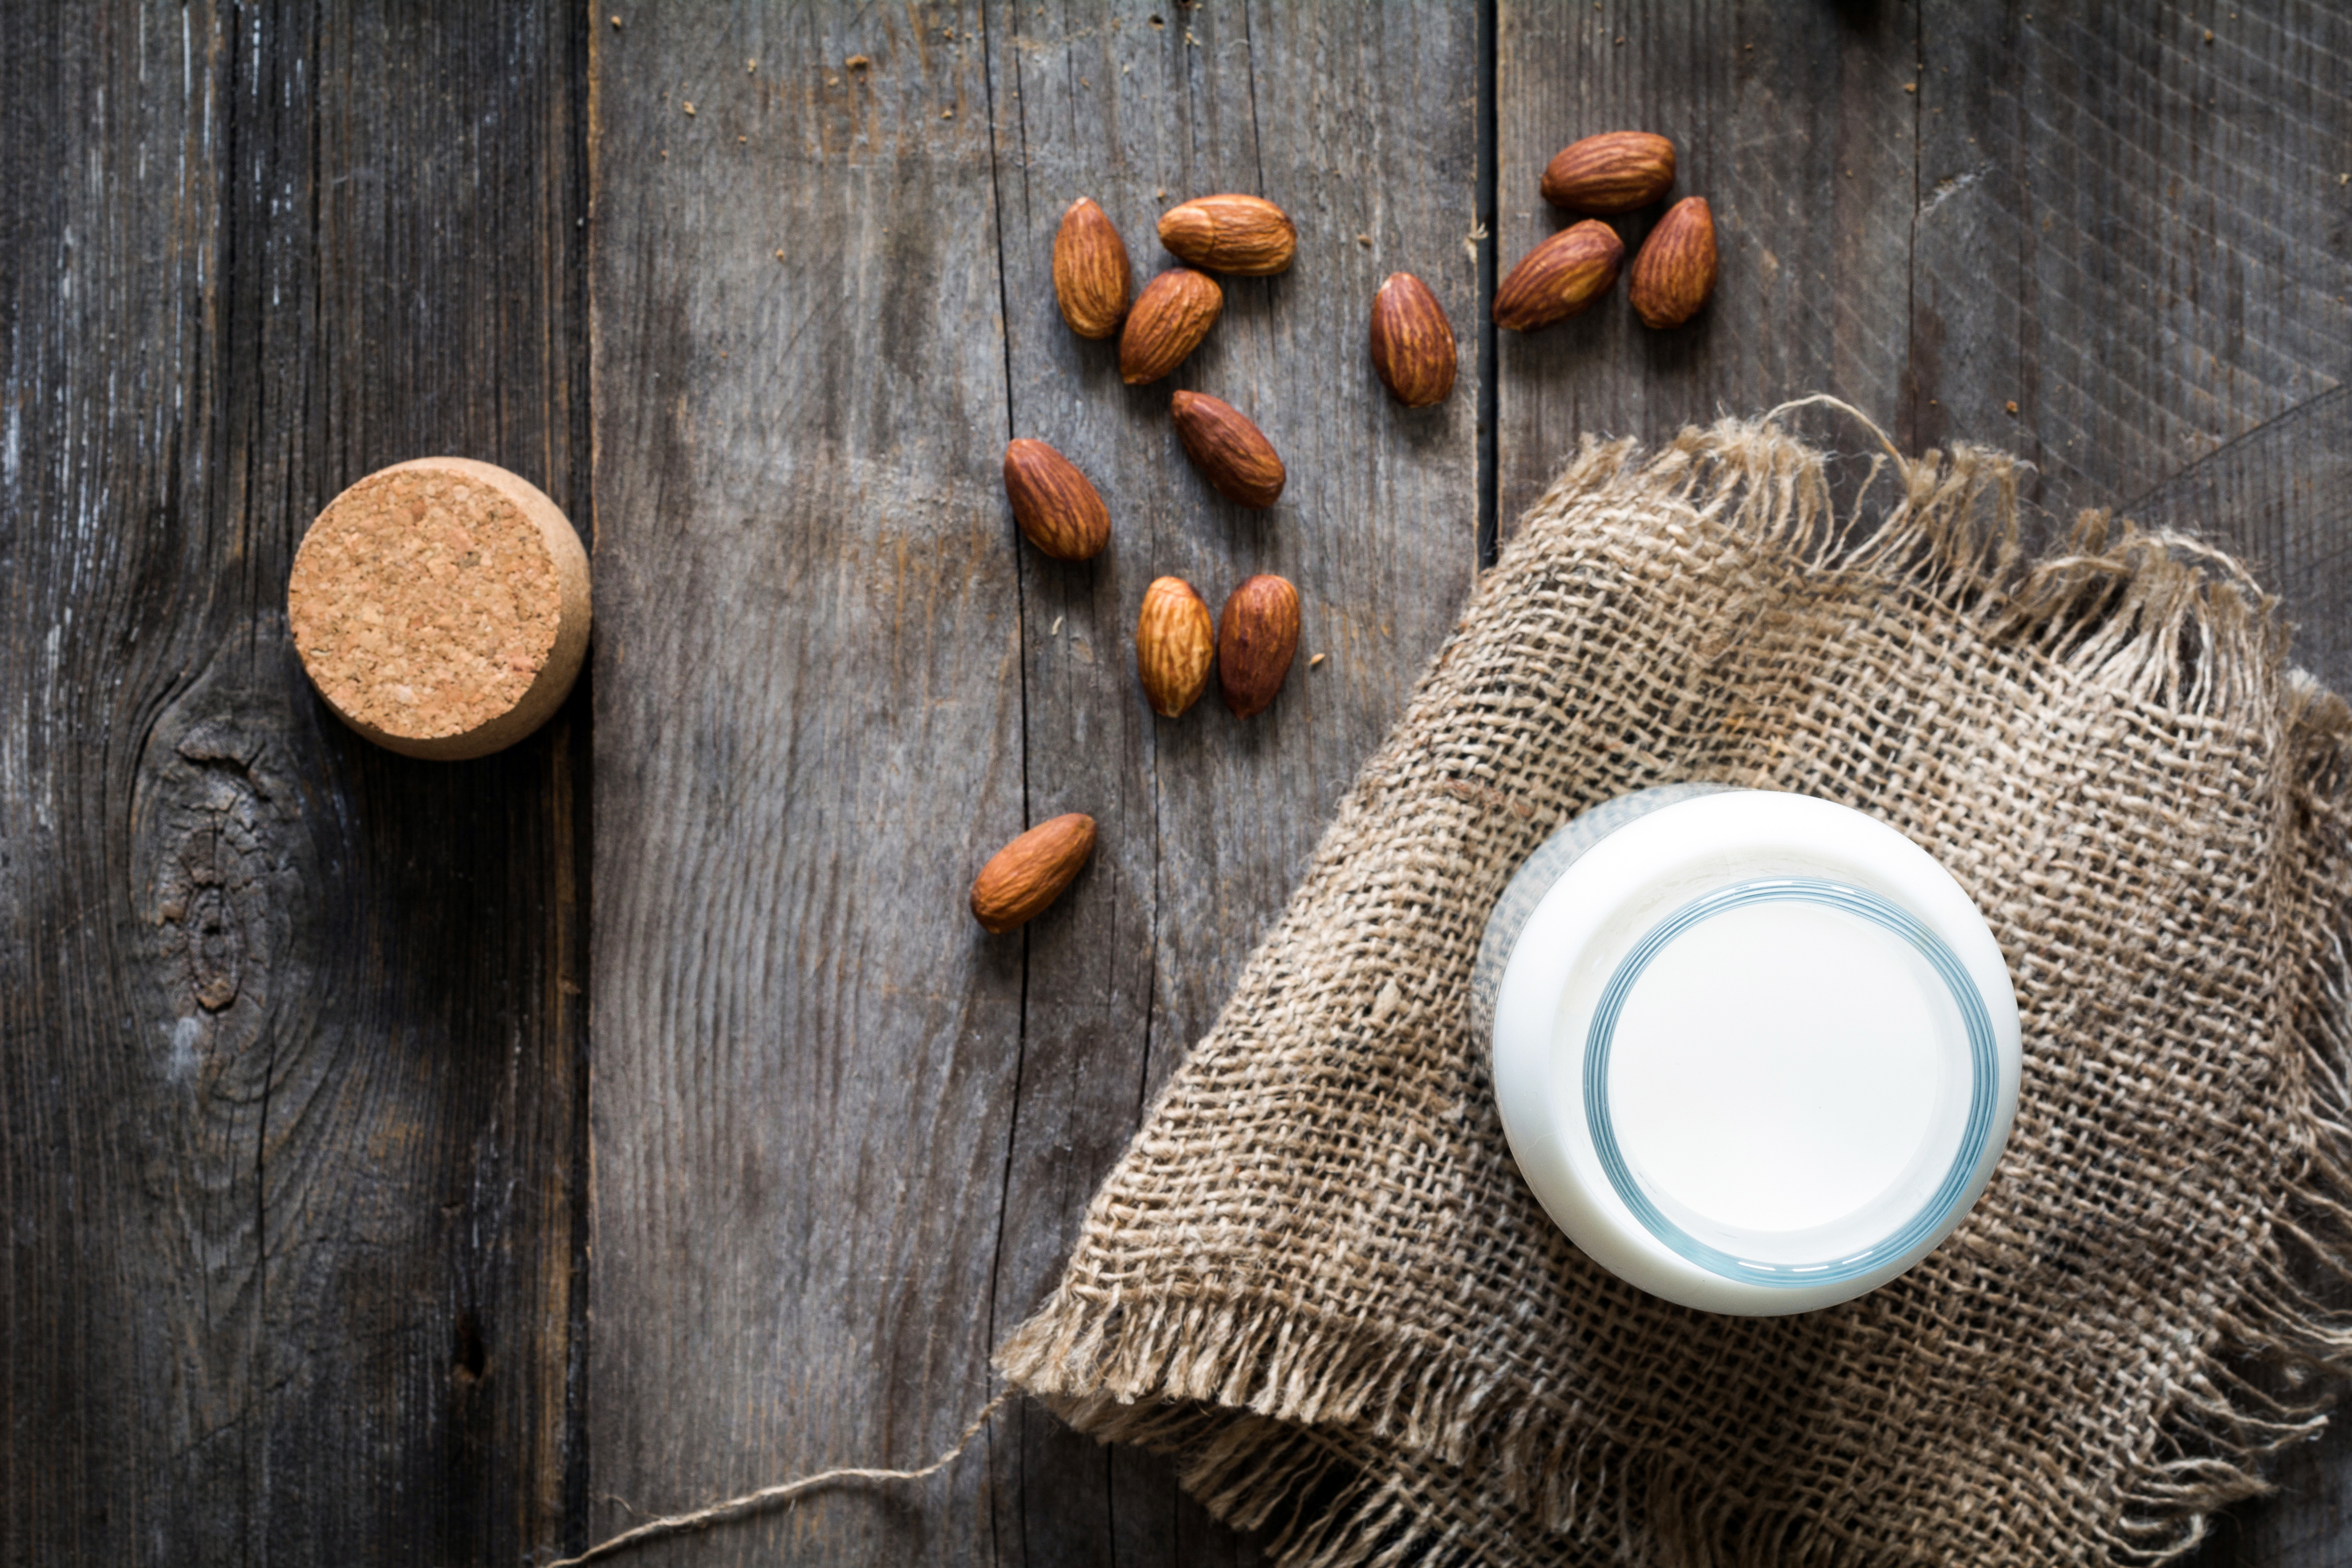 What Are the Benefits of Lactose-Free Milk? | Healthy Eating